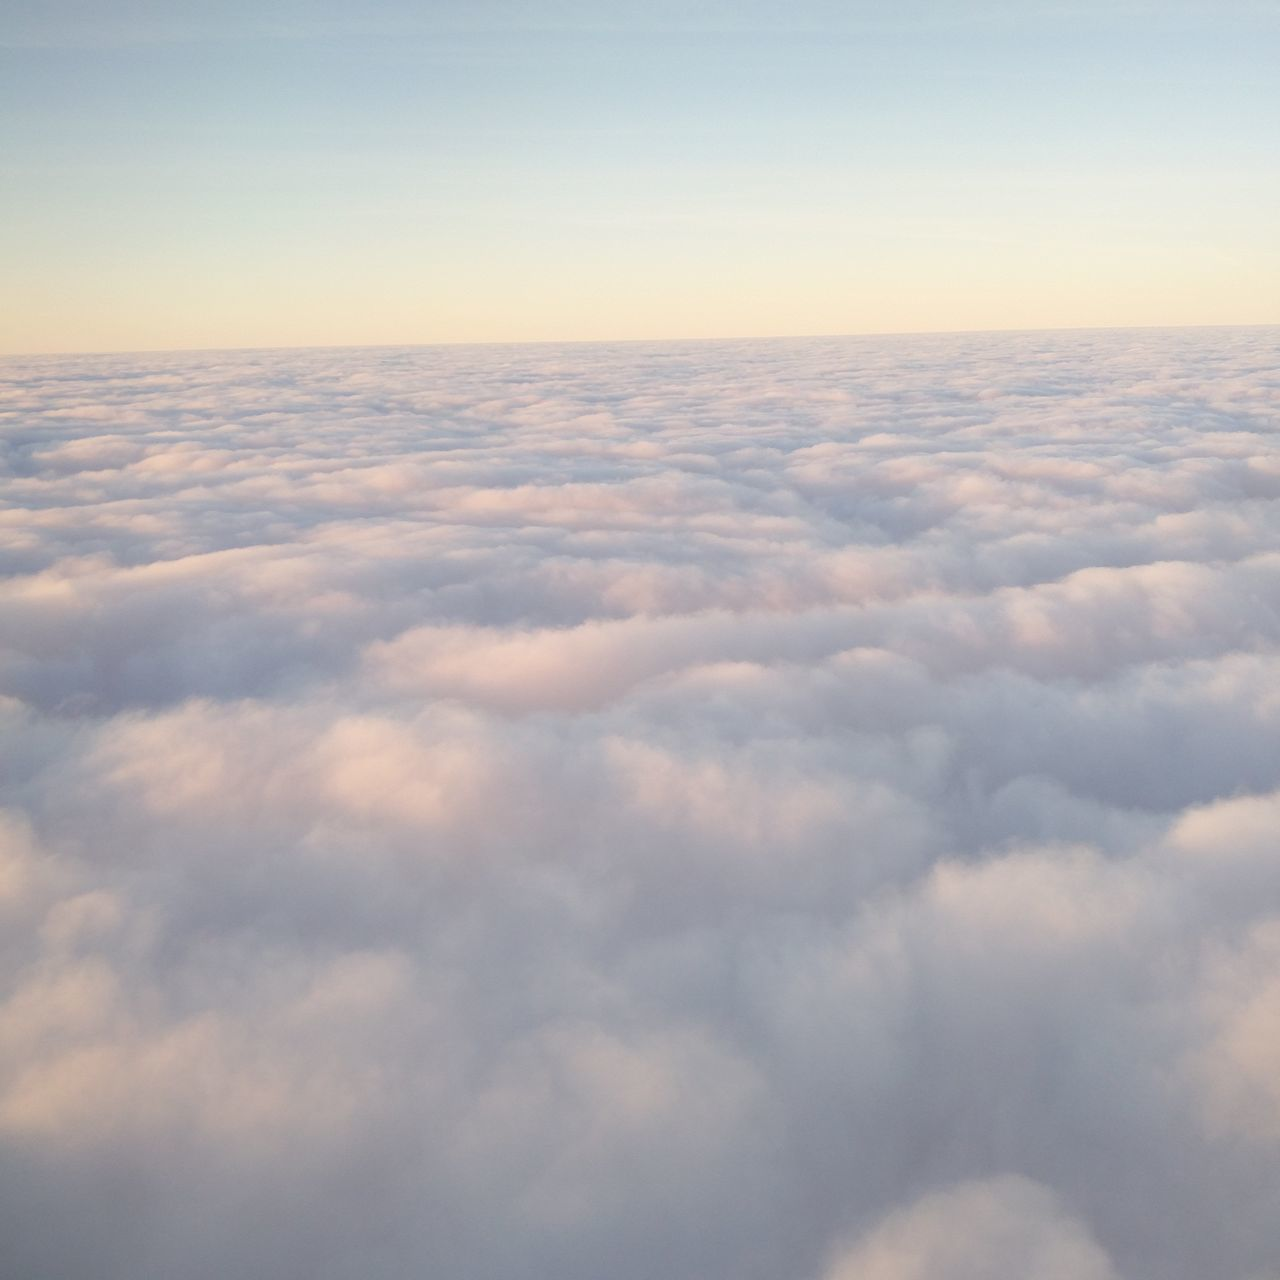 cloud - sky, nature, sky, scenics, beauty in nature, tranquility, cloudscape, outdoors, no people, softness, tranquil scene, aerial view, blue, sky only, backgrounds, day, the natural world